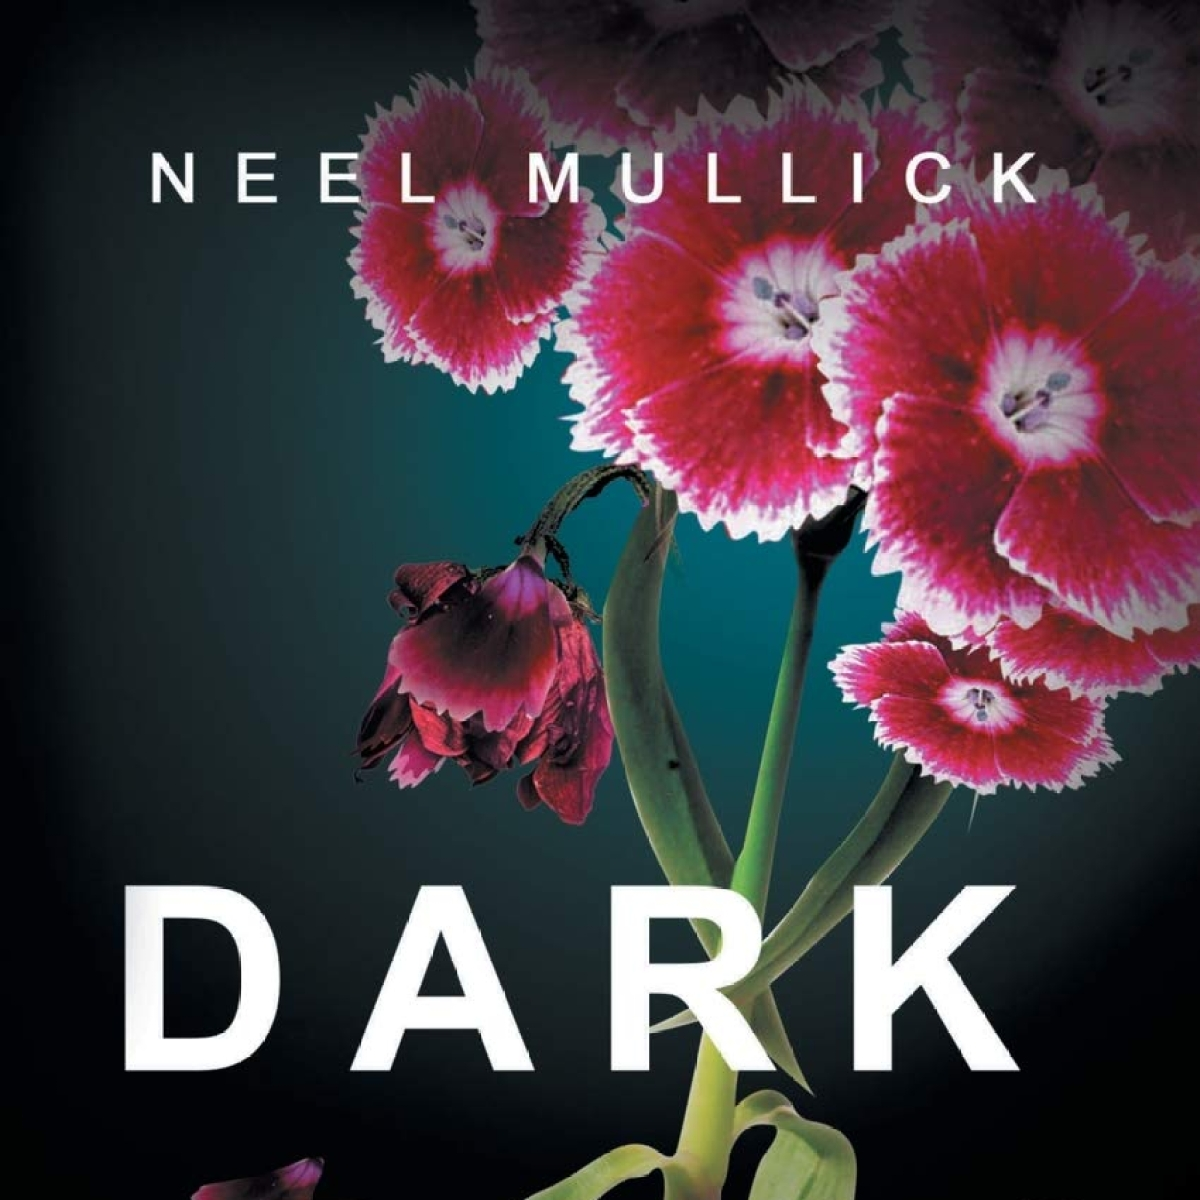 Book Review: Dark Blossom - probing the human mind and relationships